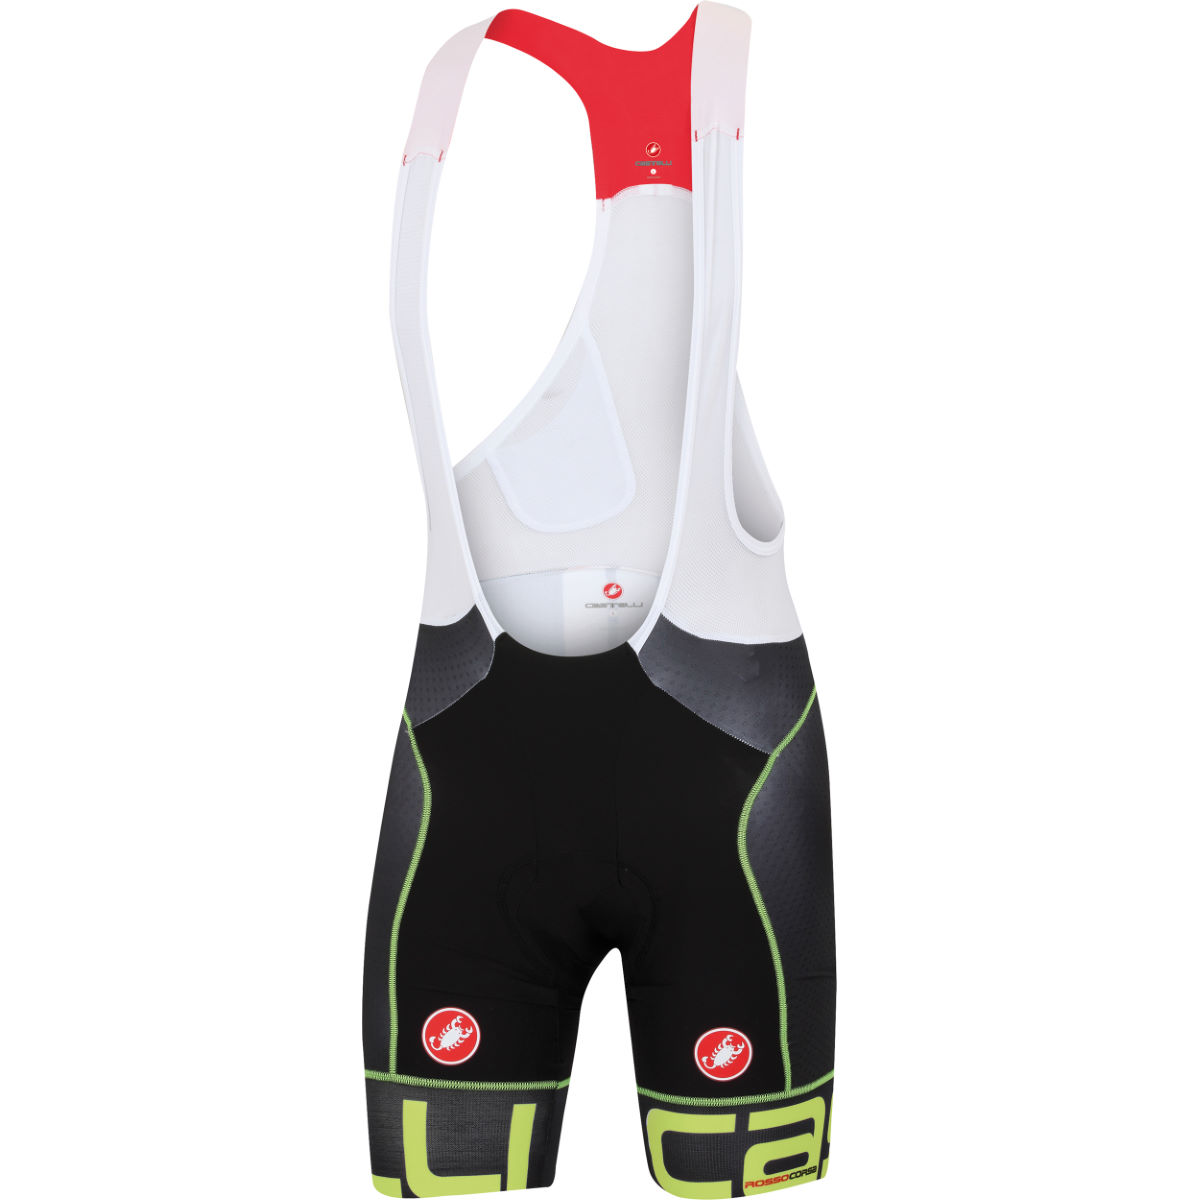 Castelli Free Aero Race Bib Shorts - Kit Version